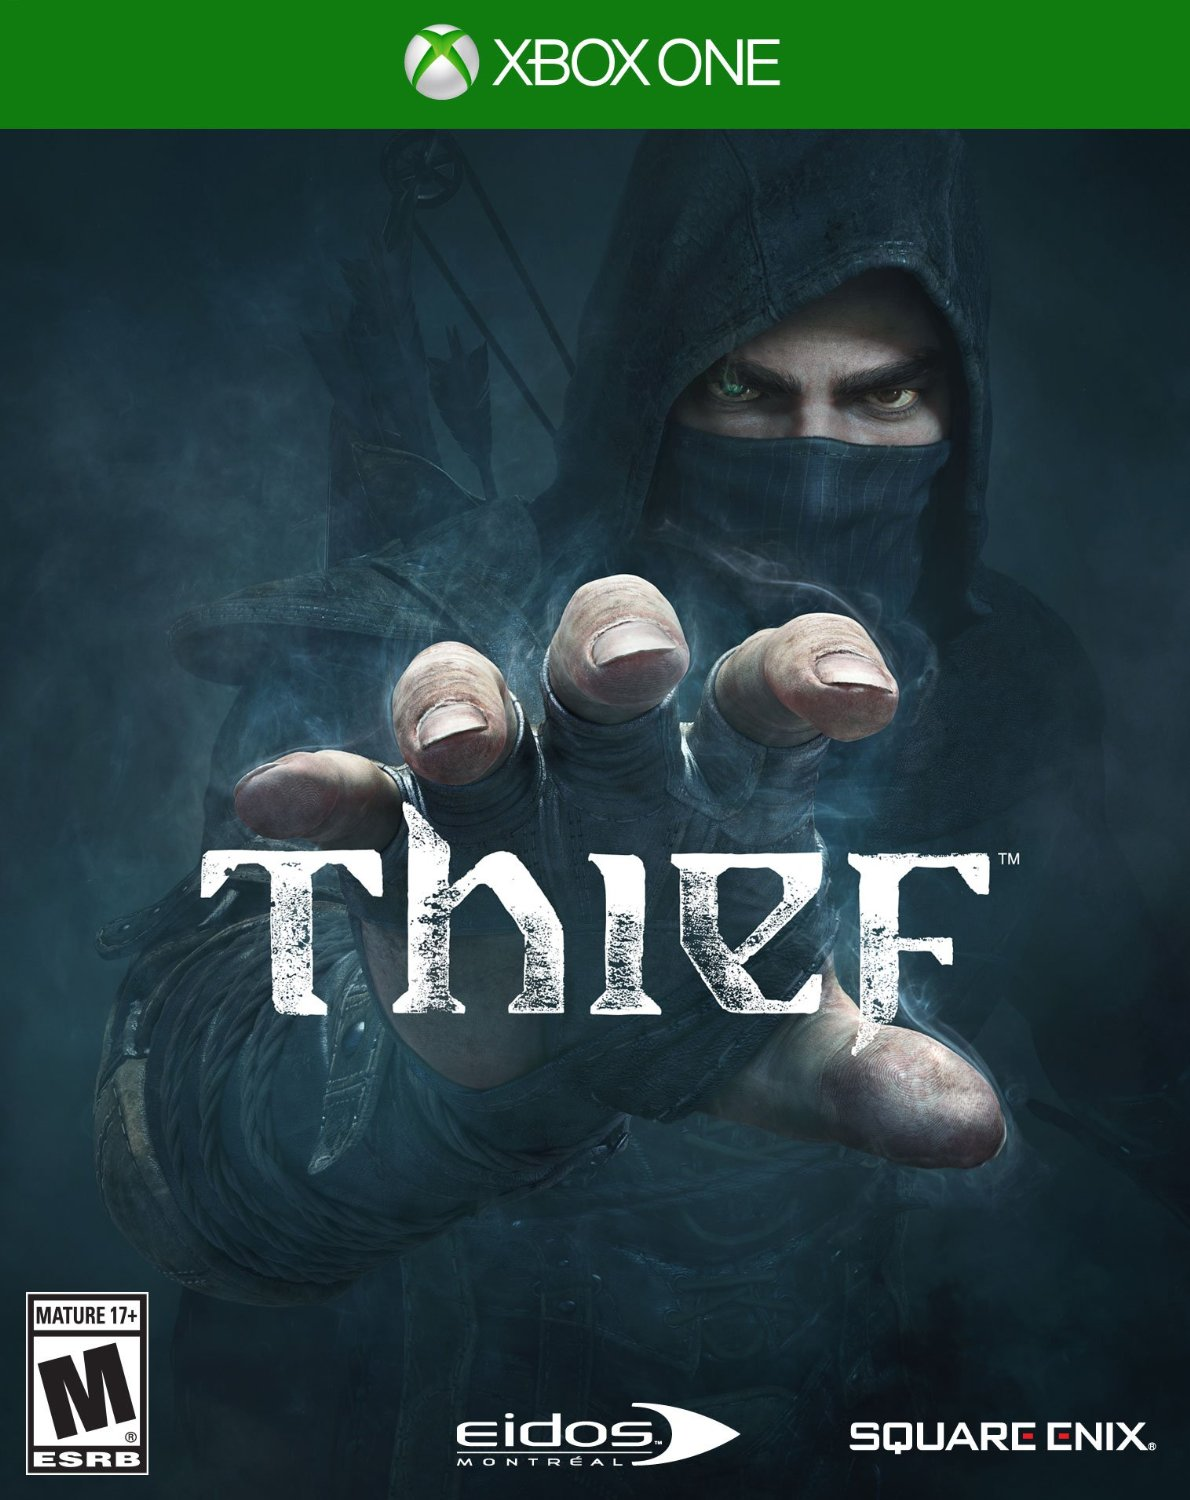 "Thief - Xbox one                                                                                                                                      <br><span class=""capt-avtor""> By:                                                  </span><br><span class=""capt-pari""> Ден:2699</span>"